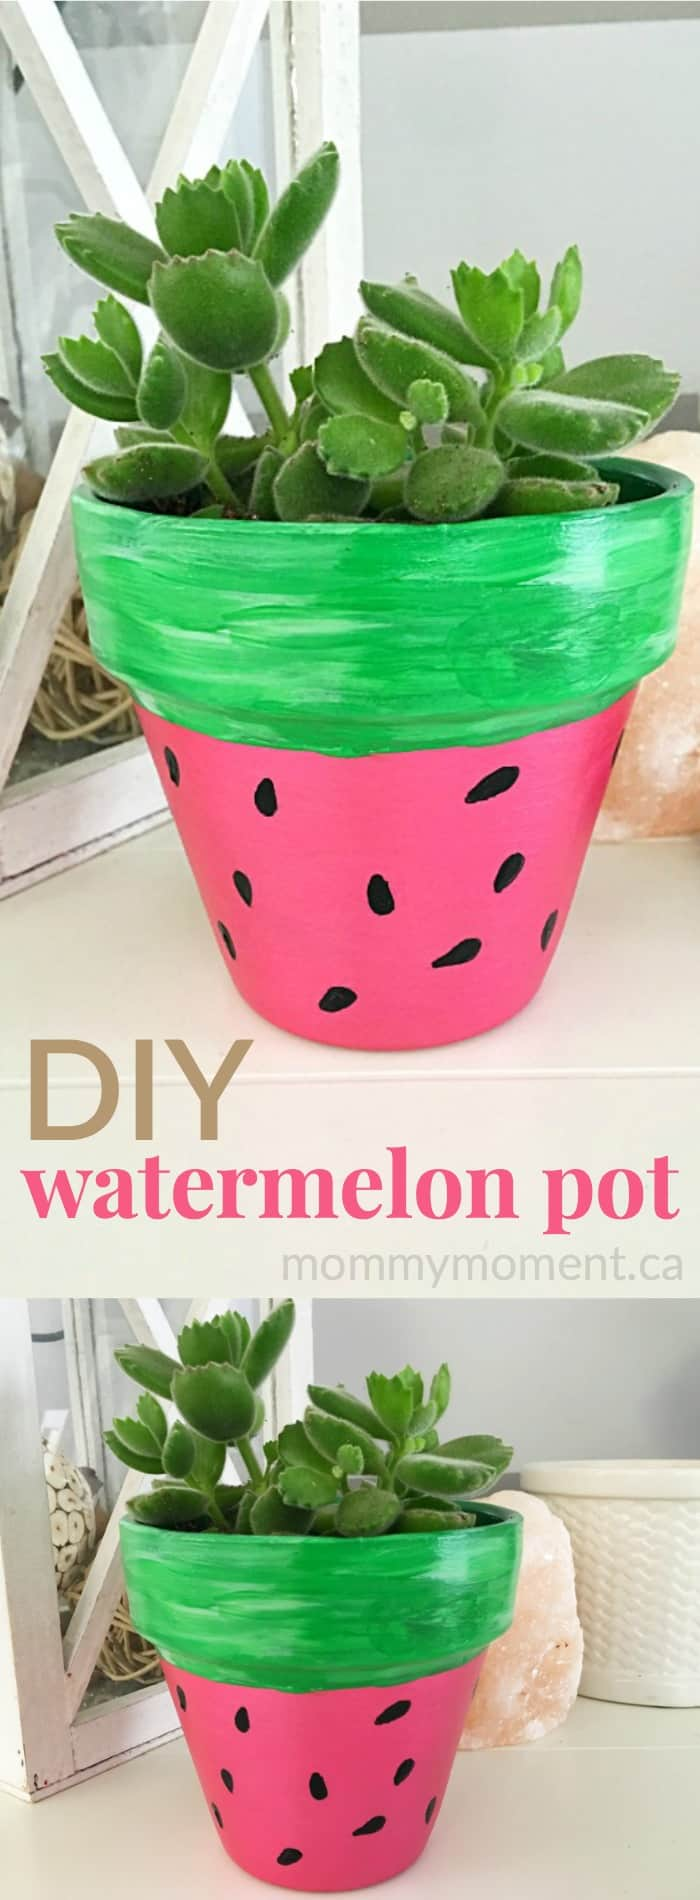 diy hand painted watermelon flower pot mommy moment. Black Bedroom Furniture Sets. Home Design Ideas